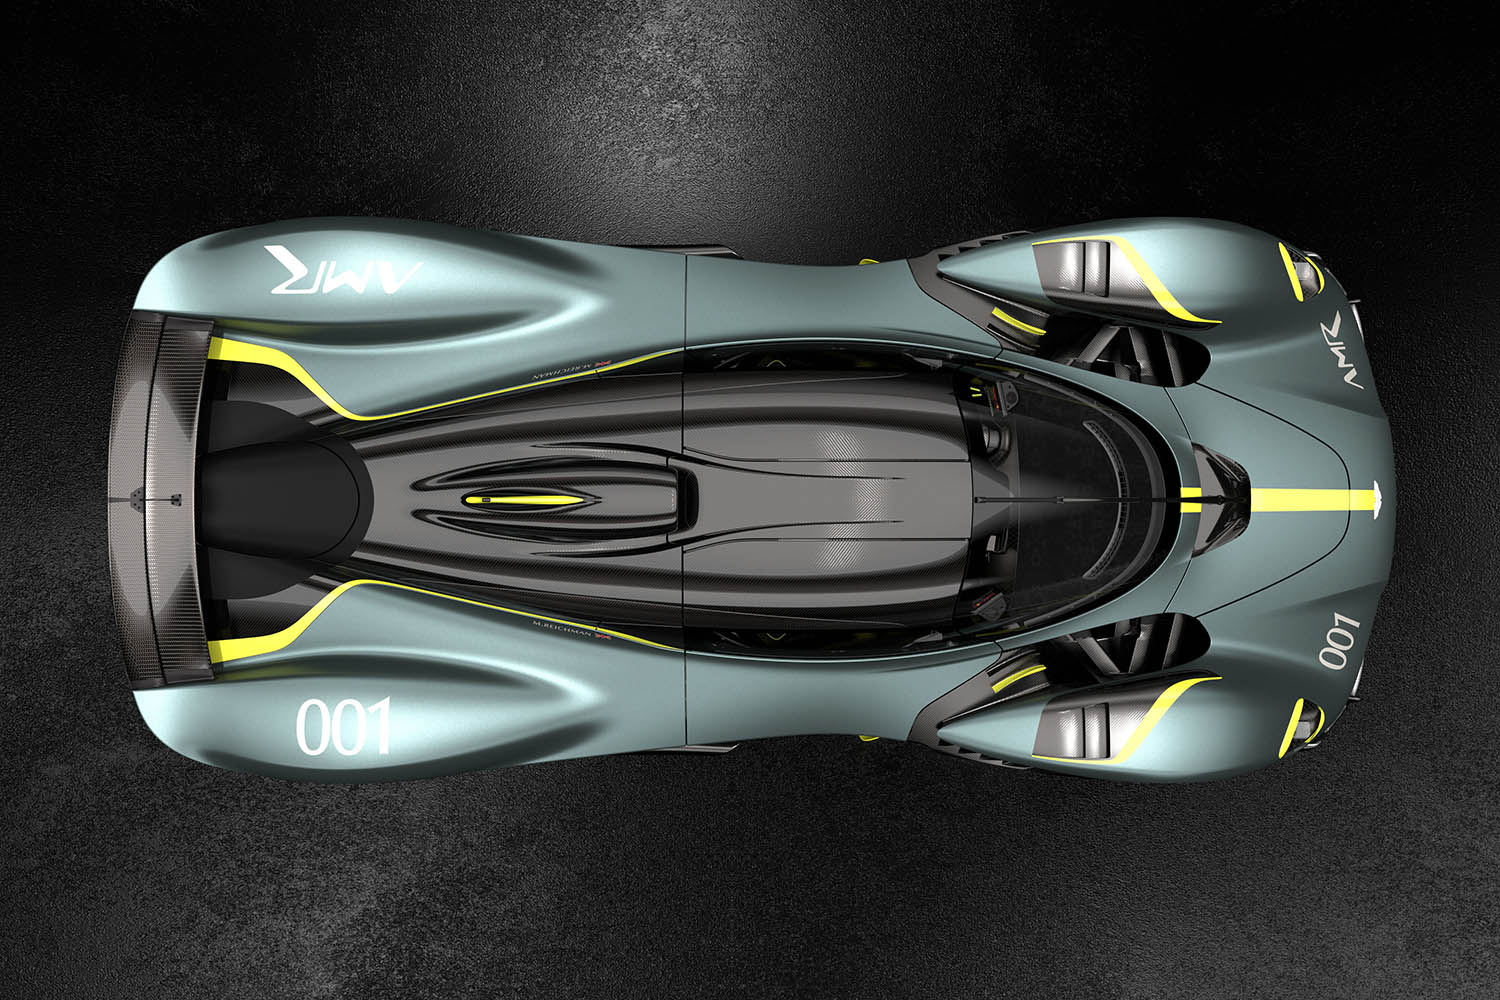 Aston Martin Valkyrie with AMR Track Performance Pack - Stirling Green and Lime livery (4).jpg